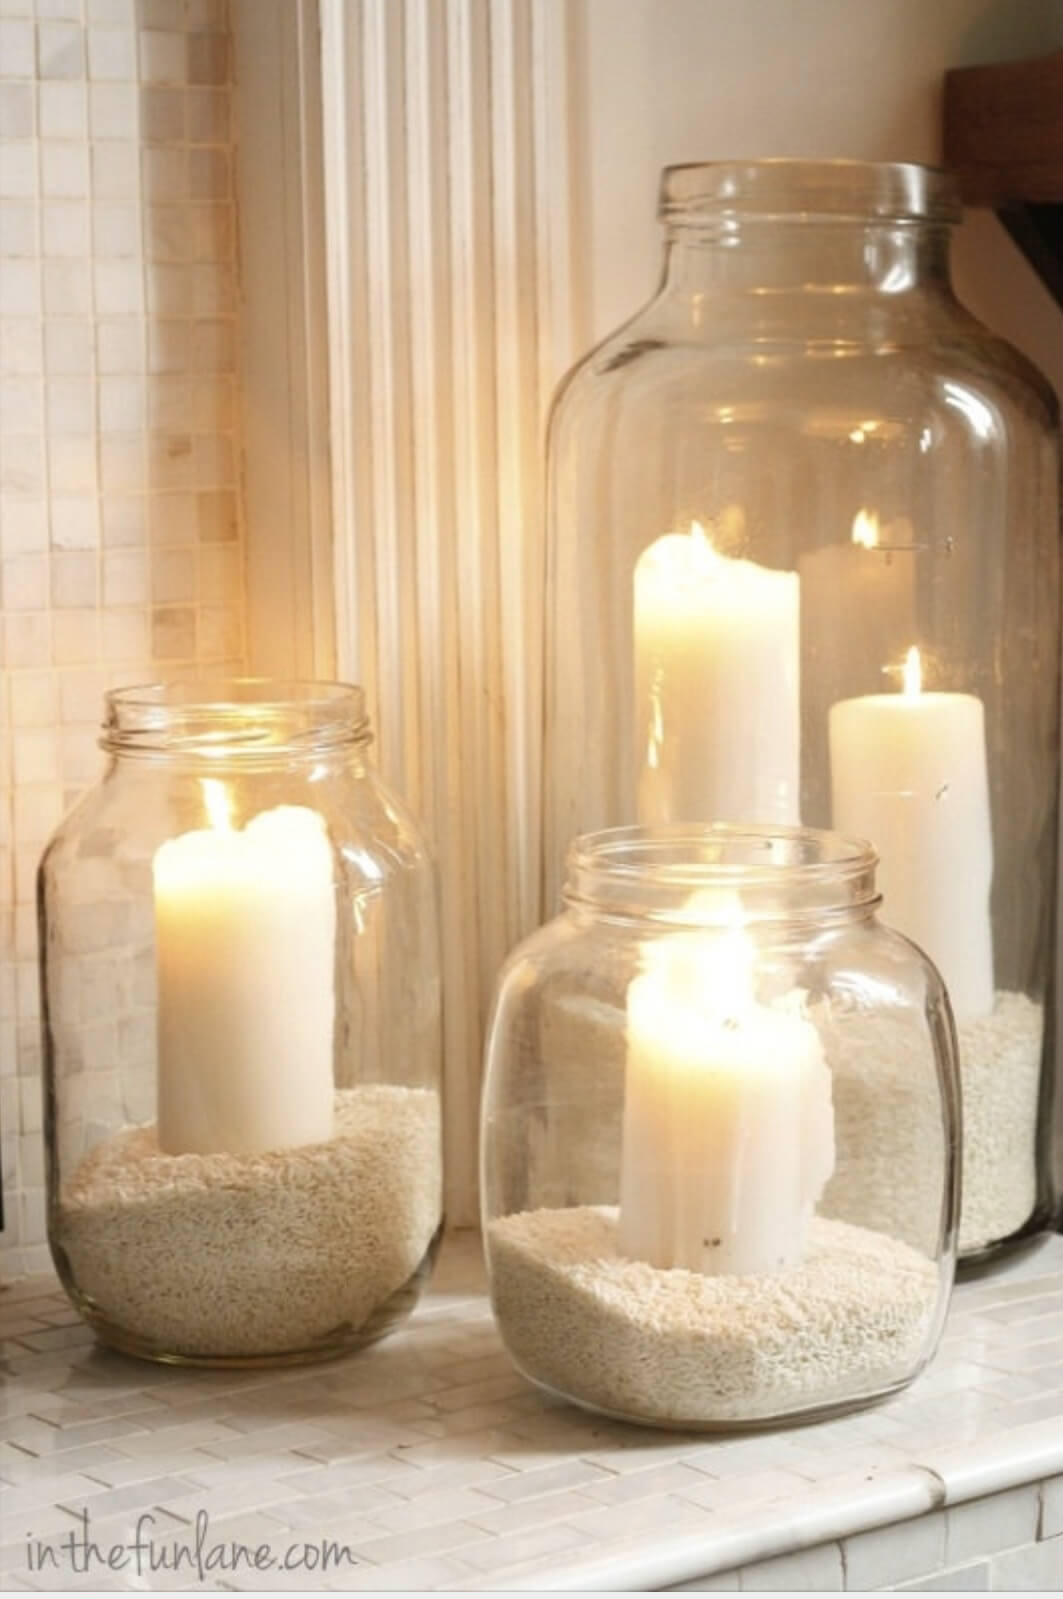 Sand-filled Jars Make Perfect Candle Holders